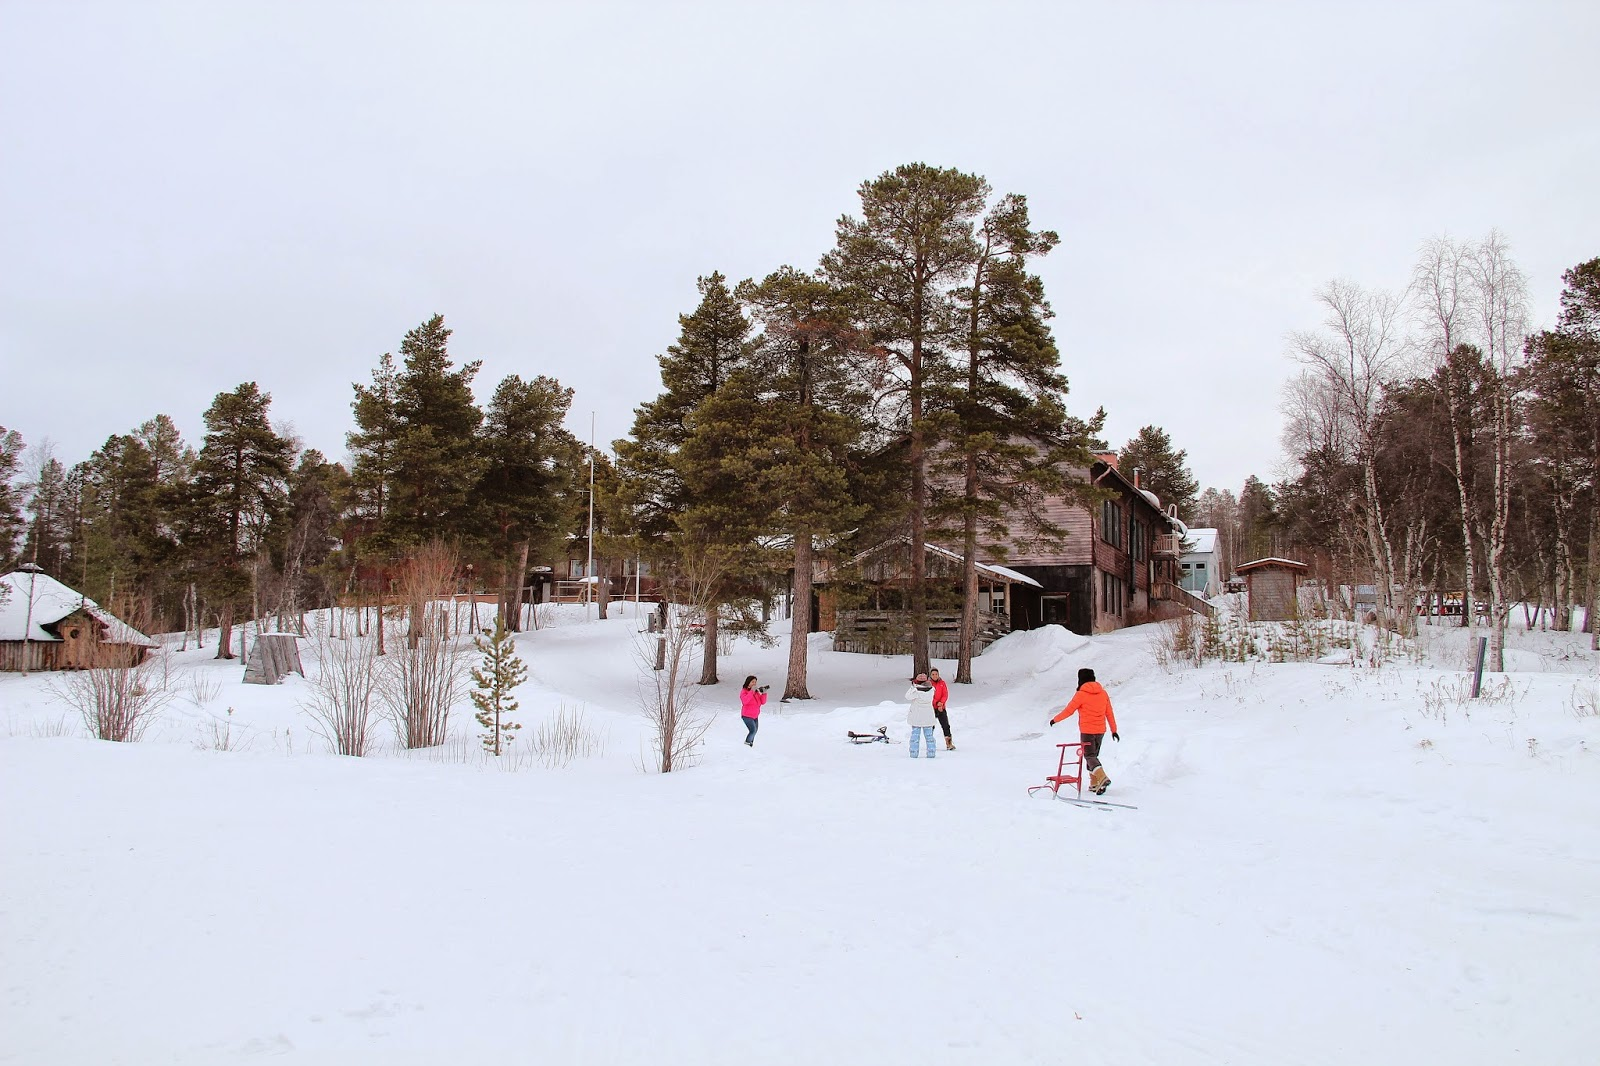 Winter Activities at Hotel Korpikartano, Finland